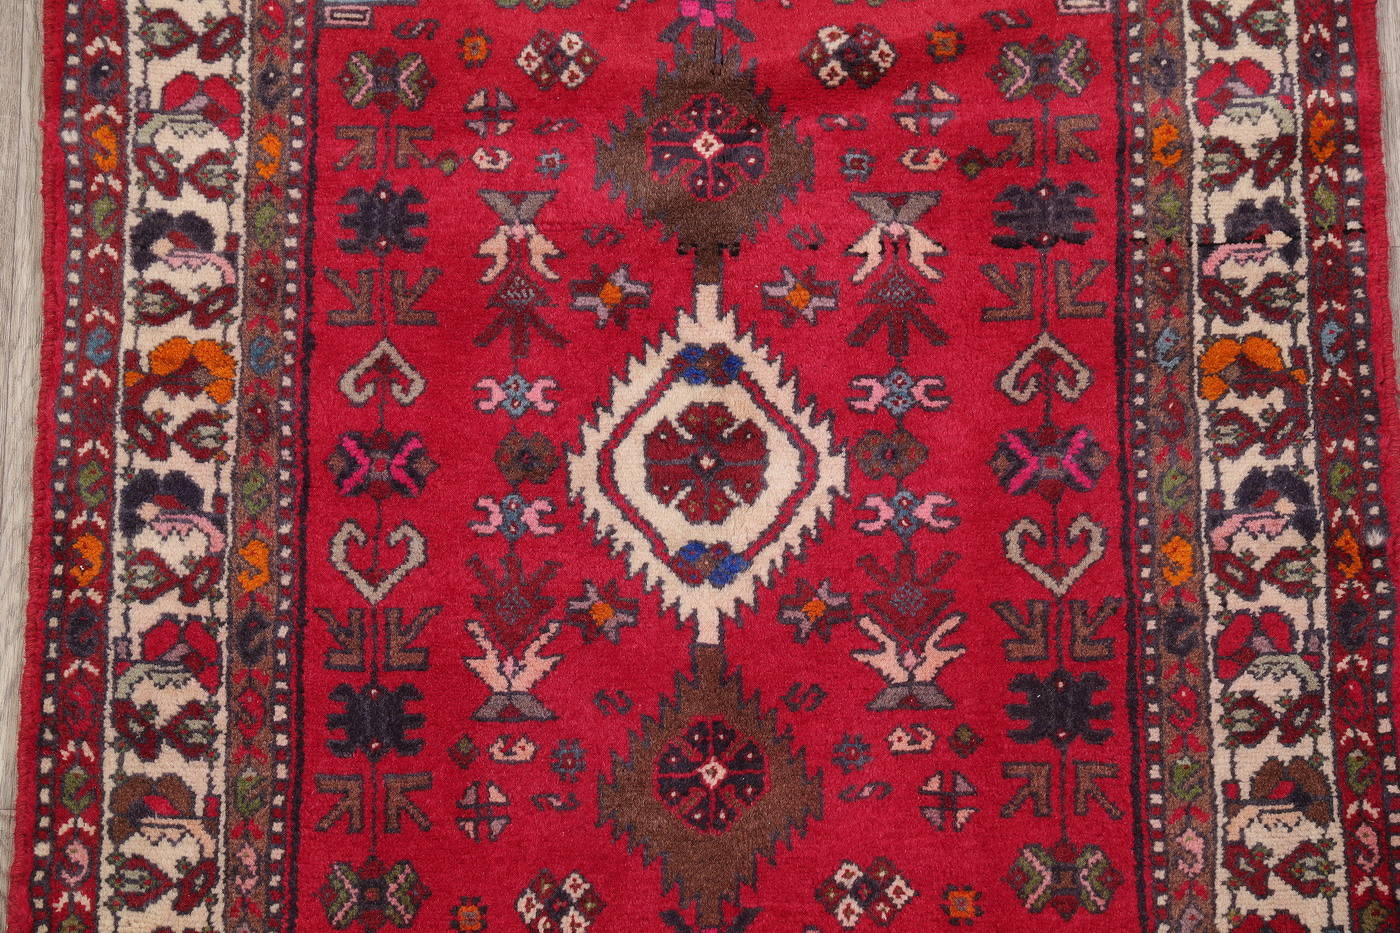 Red Tribal Bakhtiari Persian Runner Rug 3x6